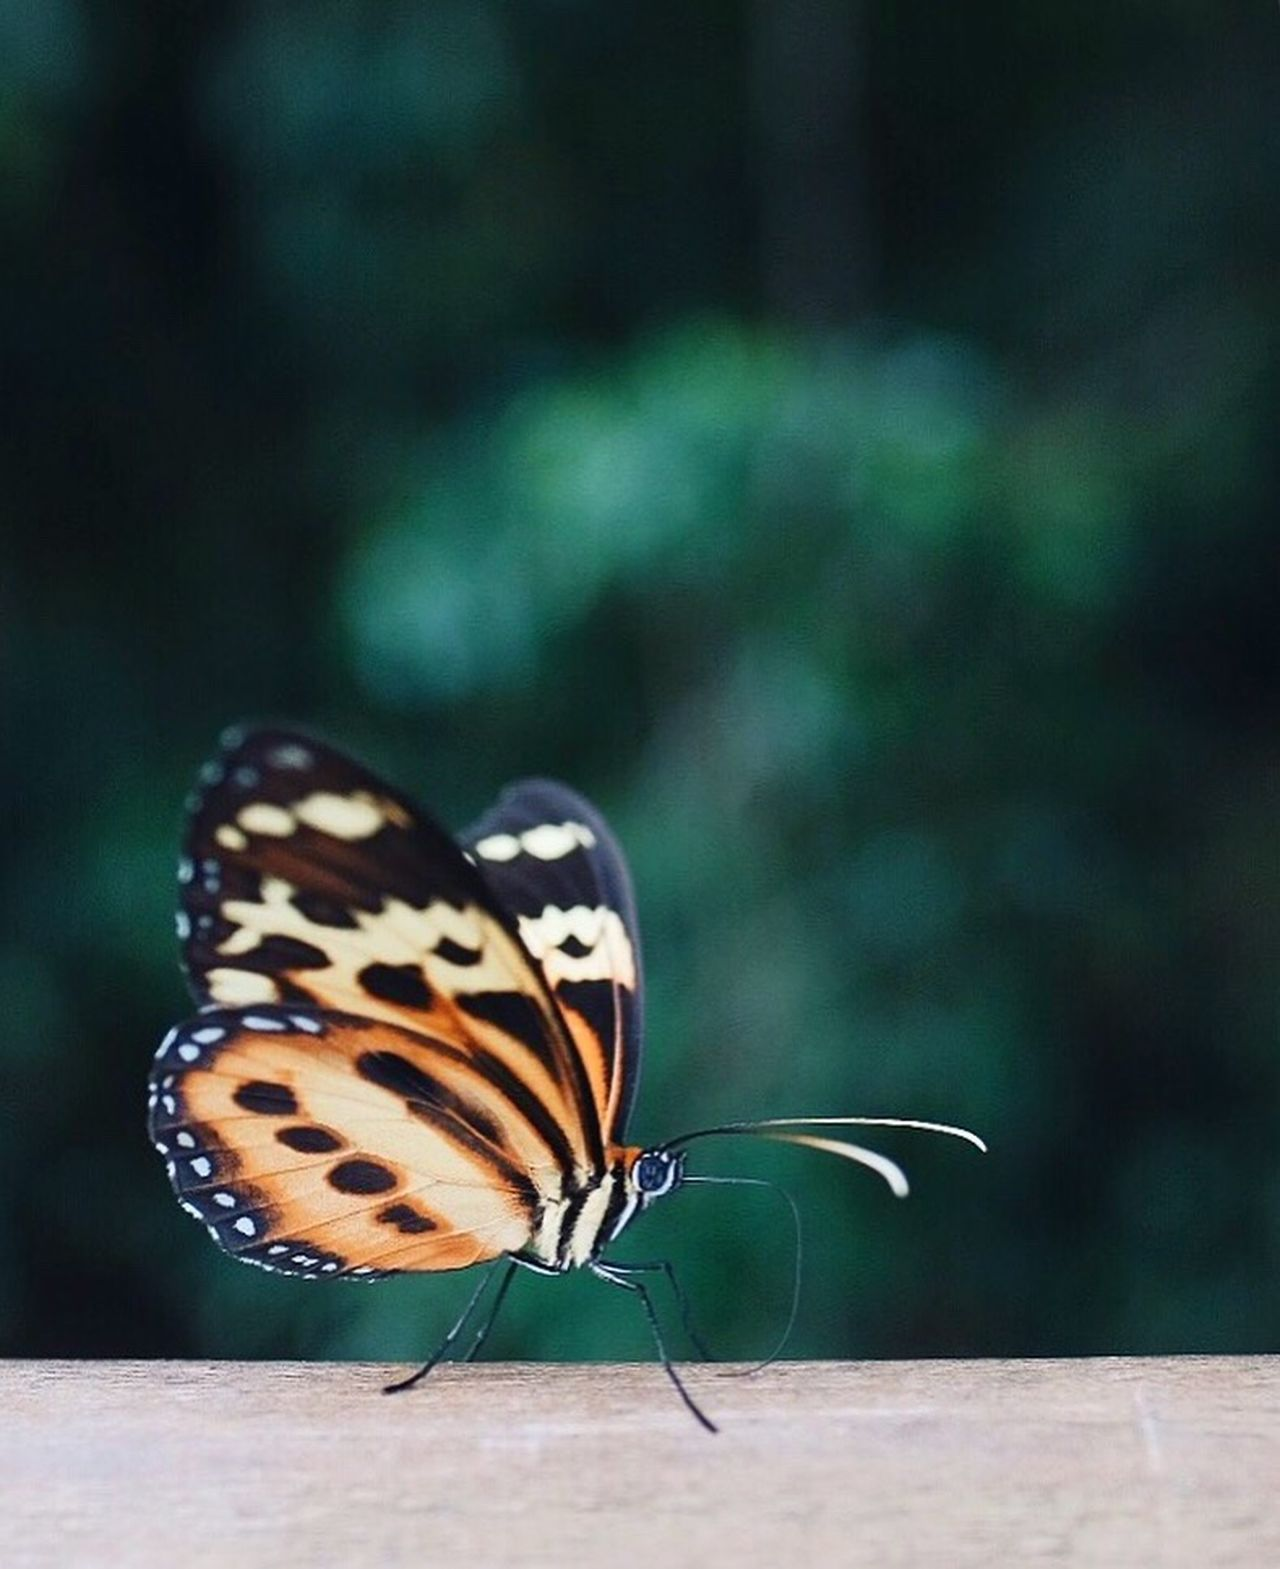 Spread your wings Butterfly - Insect Insect Animal Themes One Animal Animals In The Wild Close-up Focus On Foreground Nature Outdoors Animal Markings Day Full Length No People Butterfly Beauty In Nature Perching